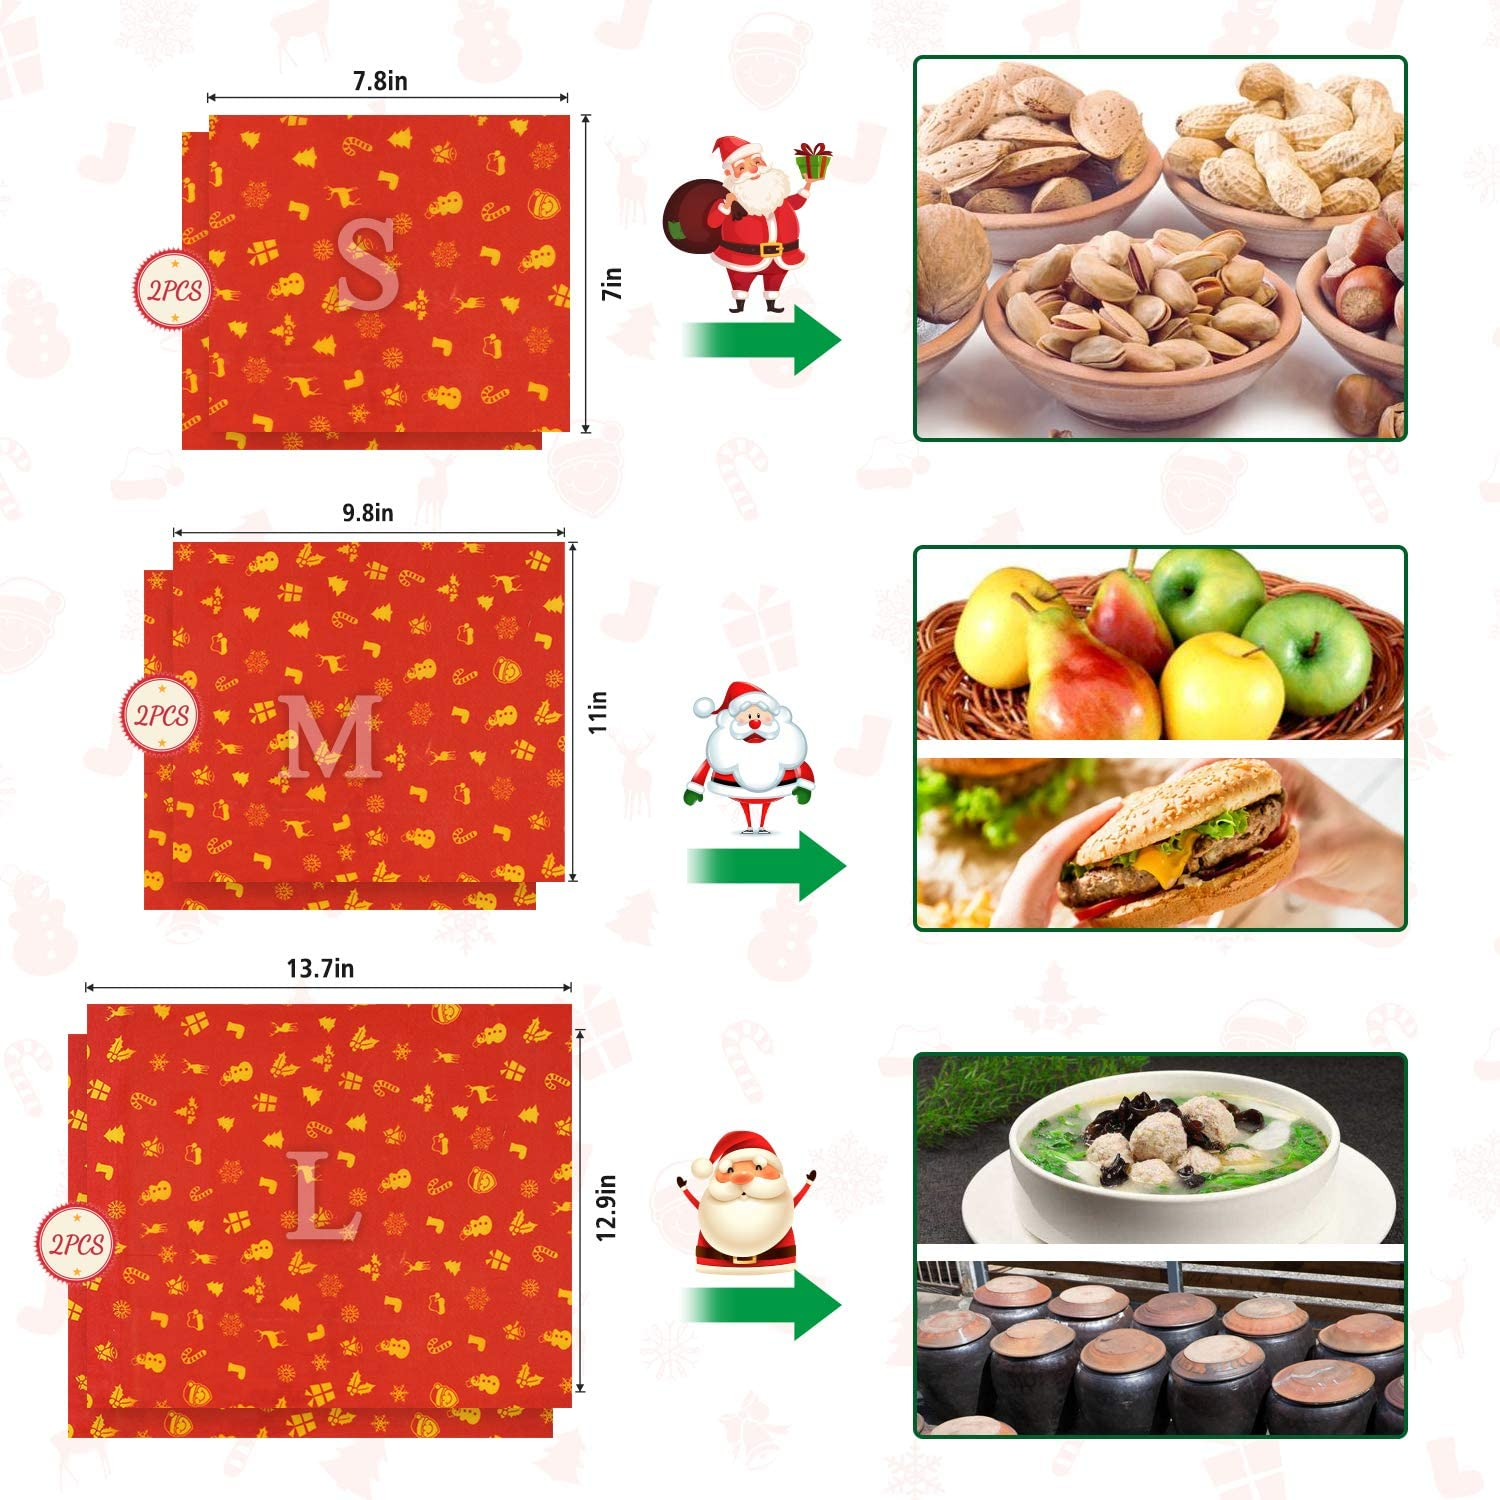 Christmas Beeswax Wrap Joyoldelf 6 Pcs Reusable Food Wrap Eco Friendly Sustainable Beeswax Food Wrap For Sandwich Cheese Fruit Bread Snacks